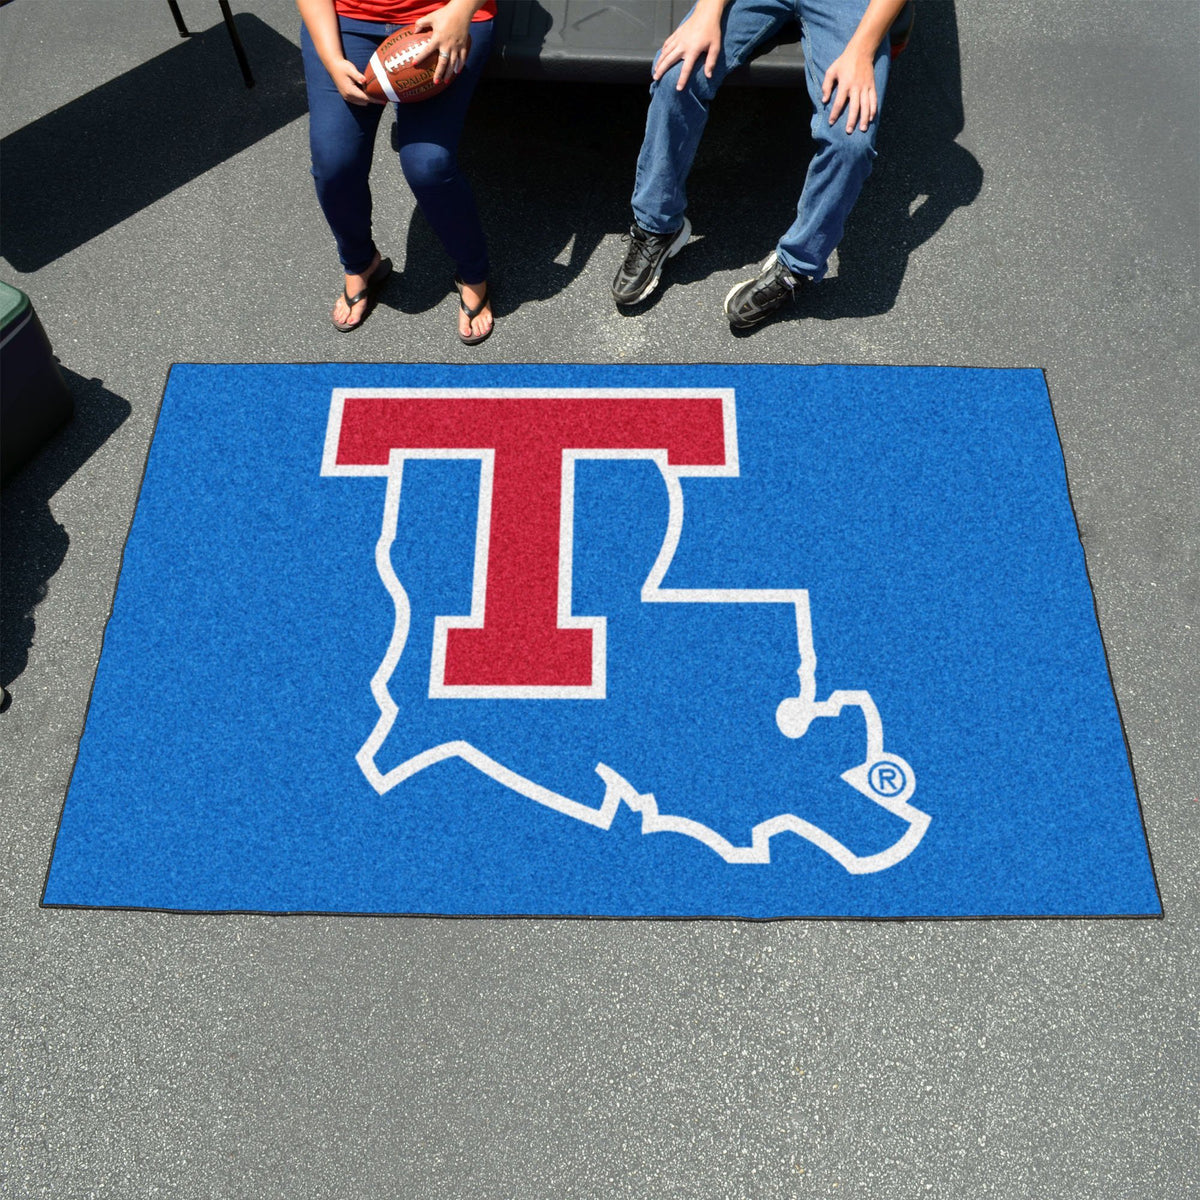 Collegiate - Ulti-Mat: A - L Collegiate Mats, Rectangular Mats, Ulti-Mat, Collegiate, Home Fan Mats Louisiana Tech